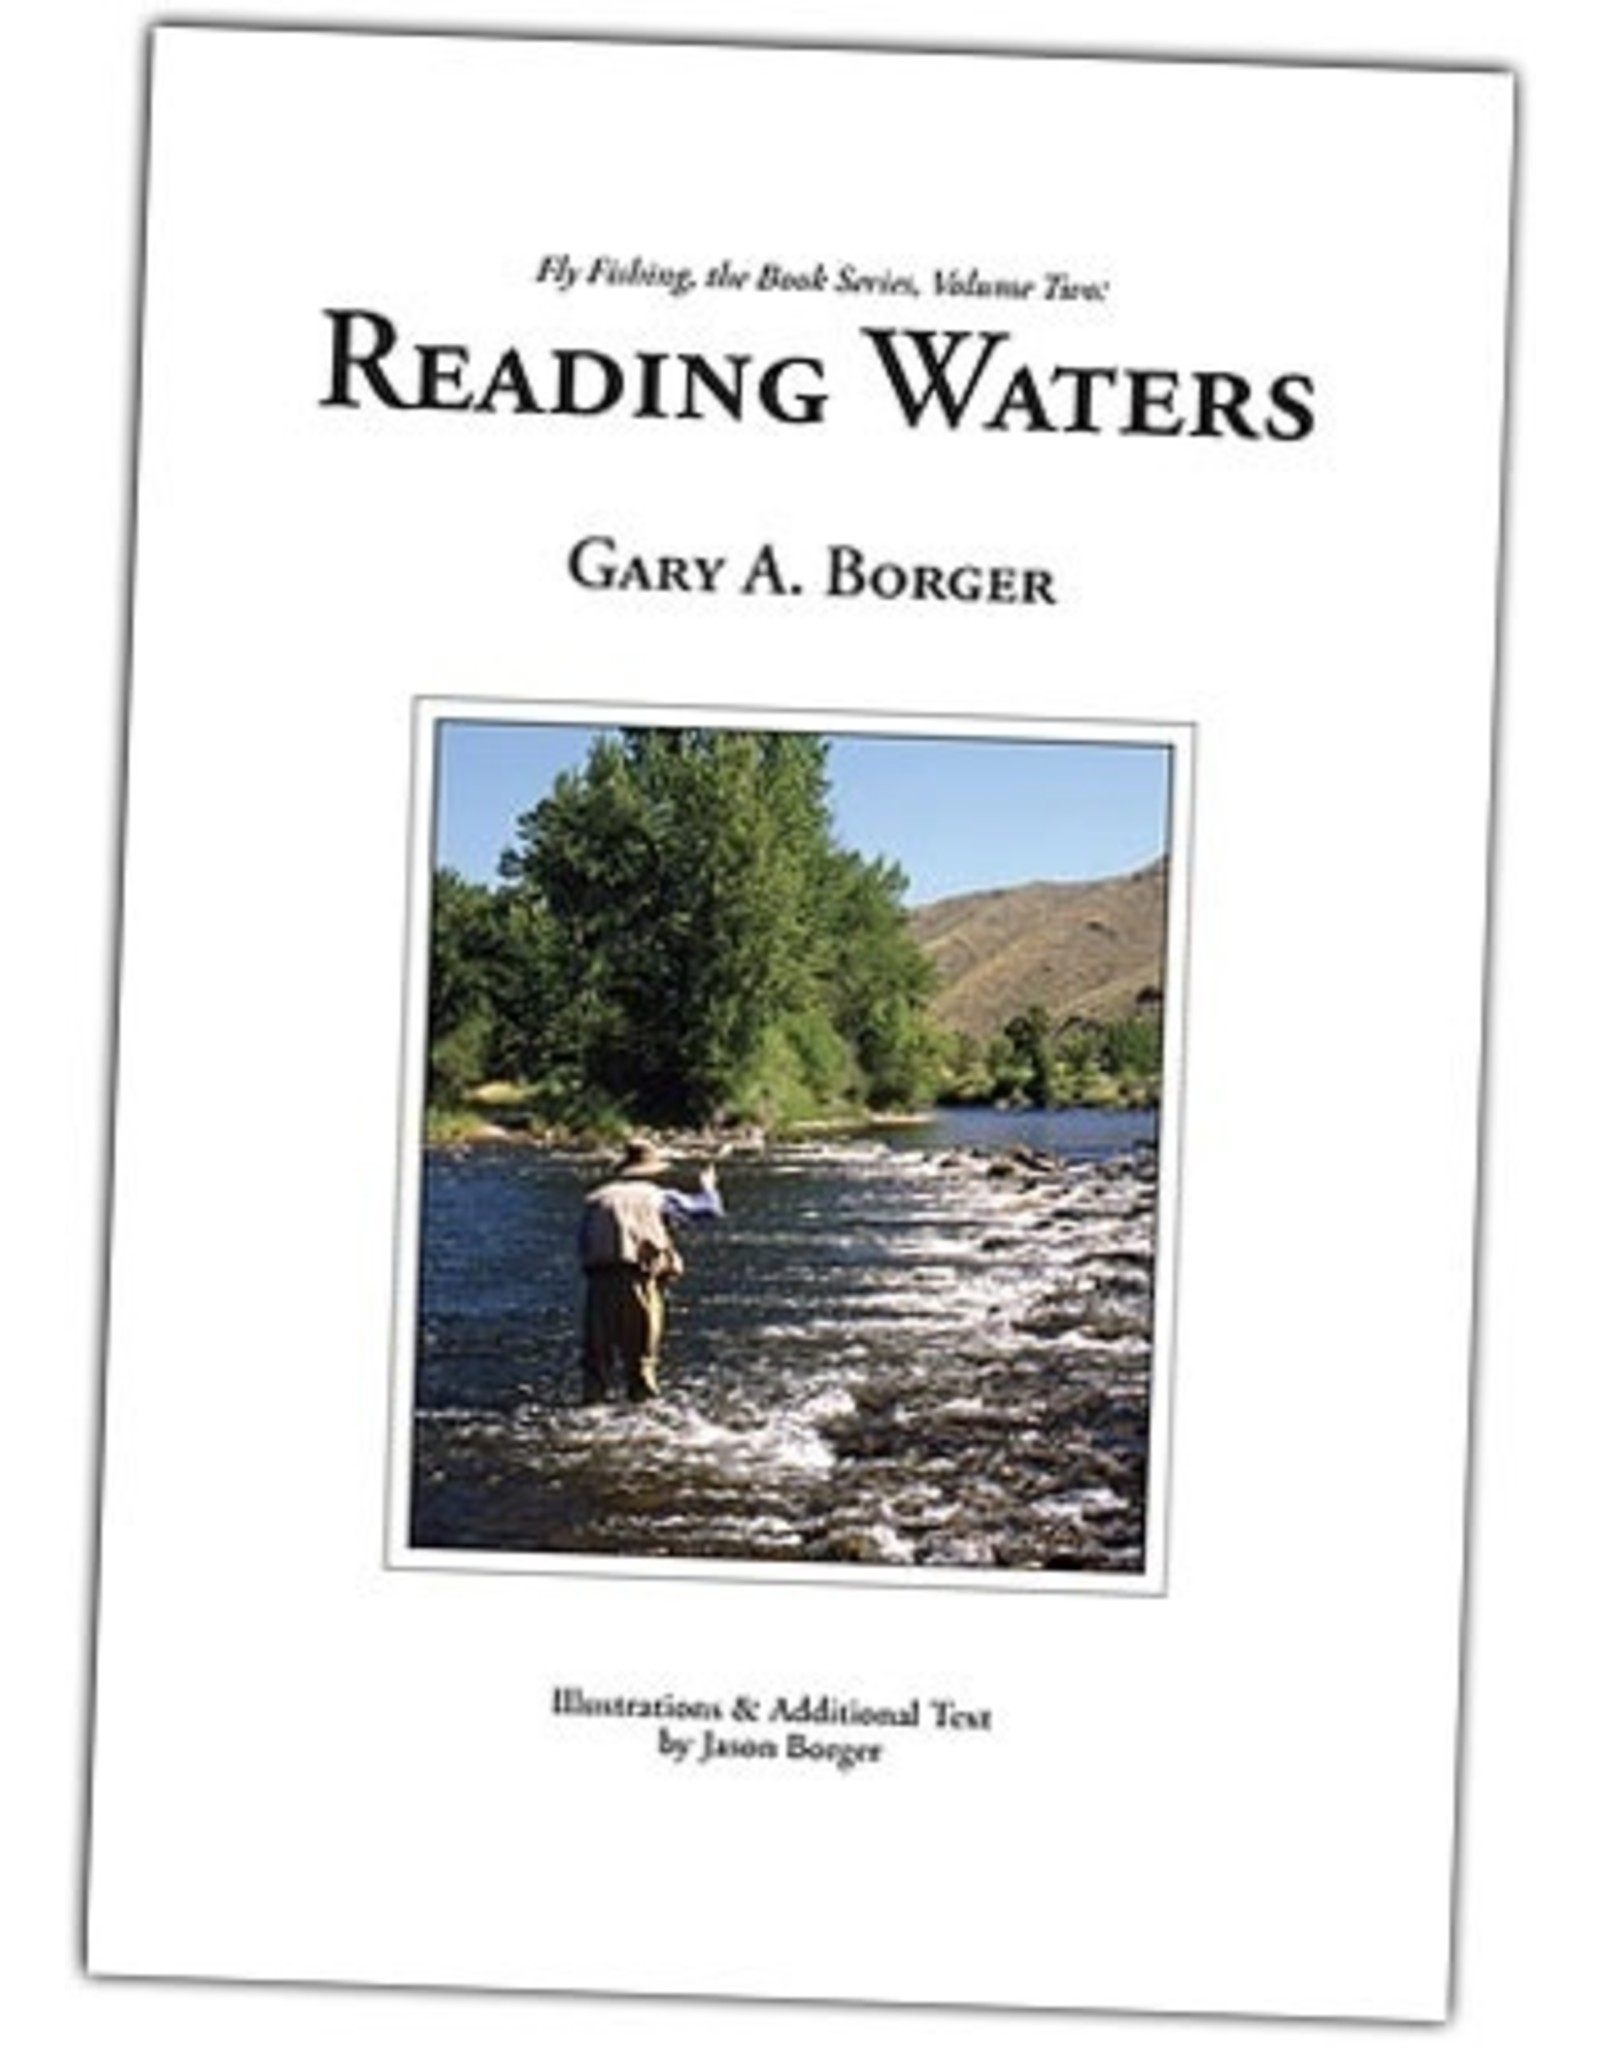 Books Reading Waters by Gary Borger